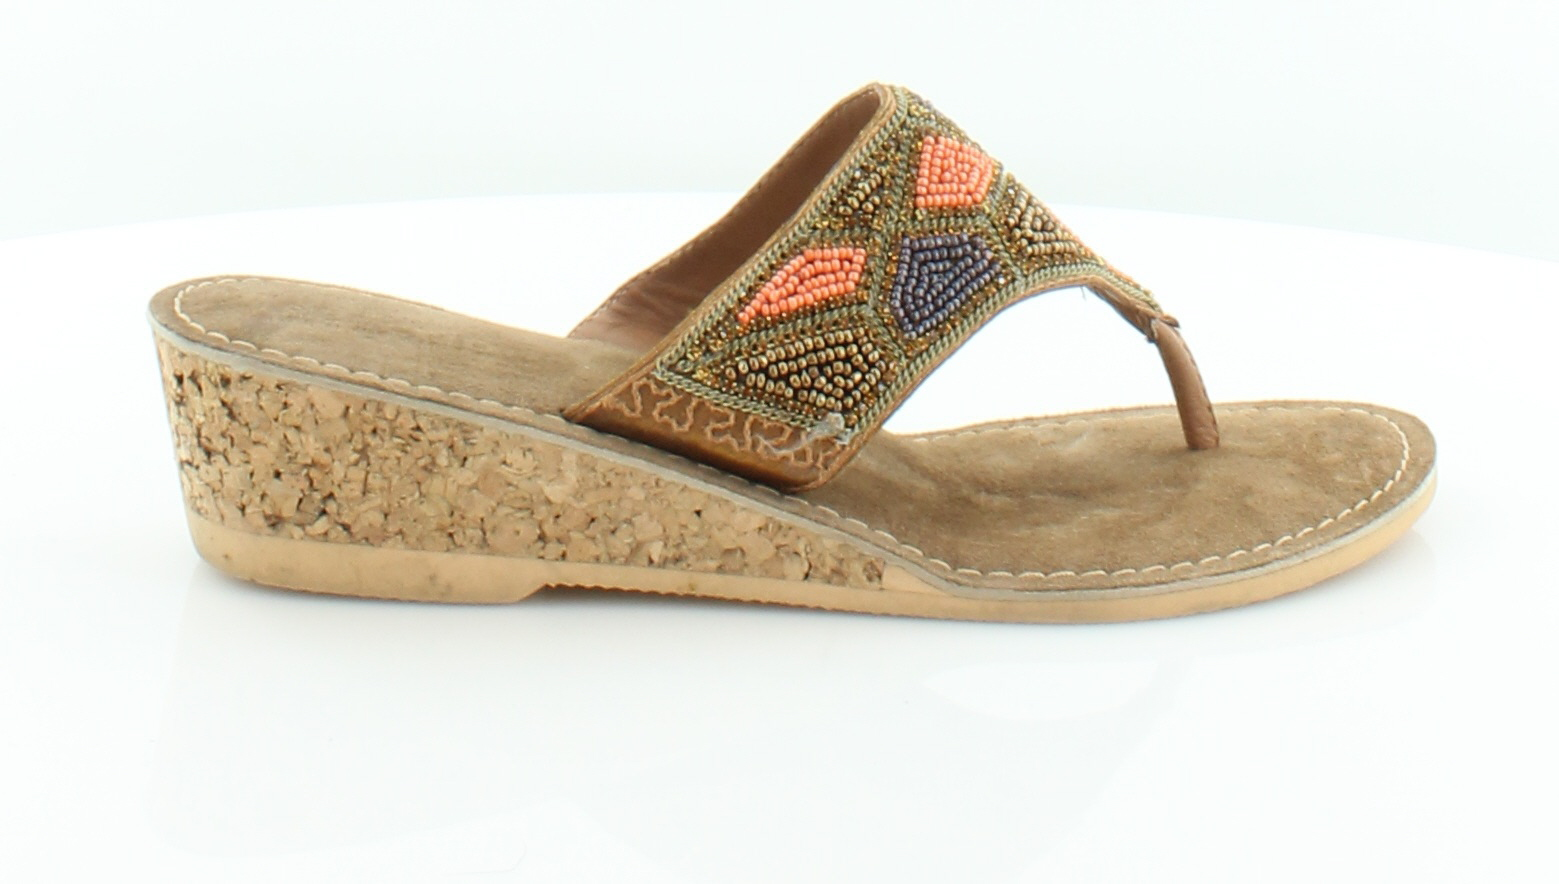 Kenneth Cole Reaction Playful Brown Womens Shoes Size $59 8 M Sandals MSRP $59 Size 3e6765